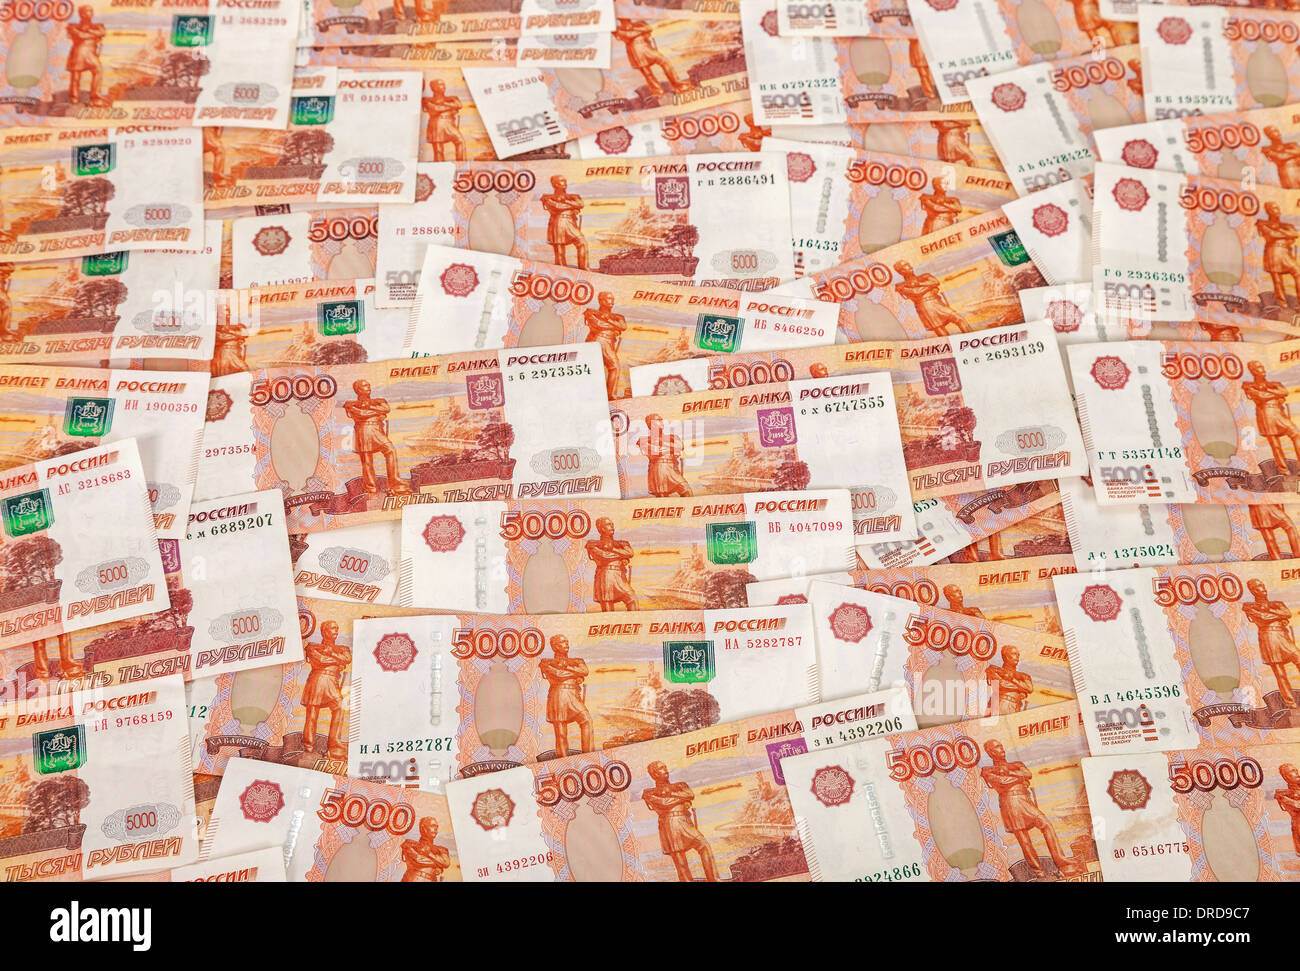 Heap of five thousand russian rubles banknotes as background - Stock Image